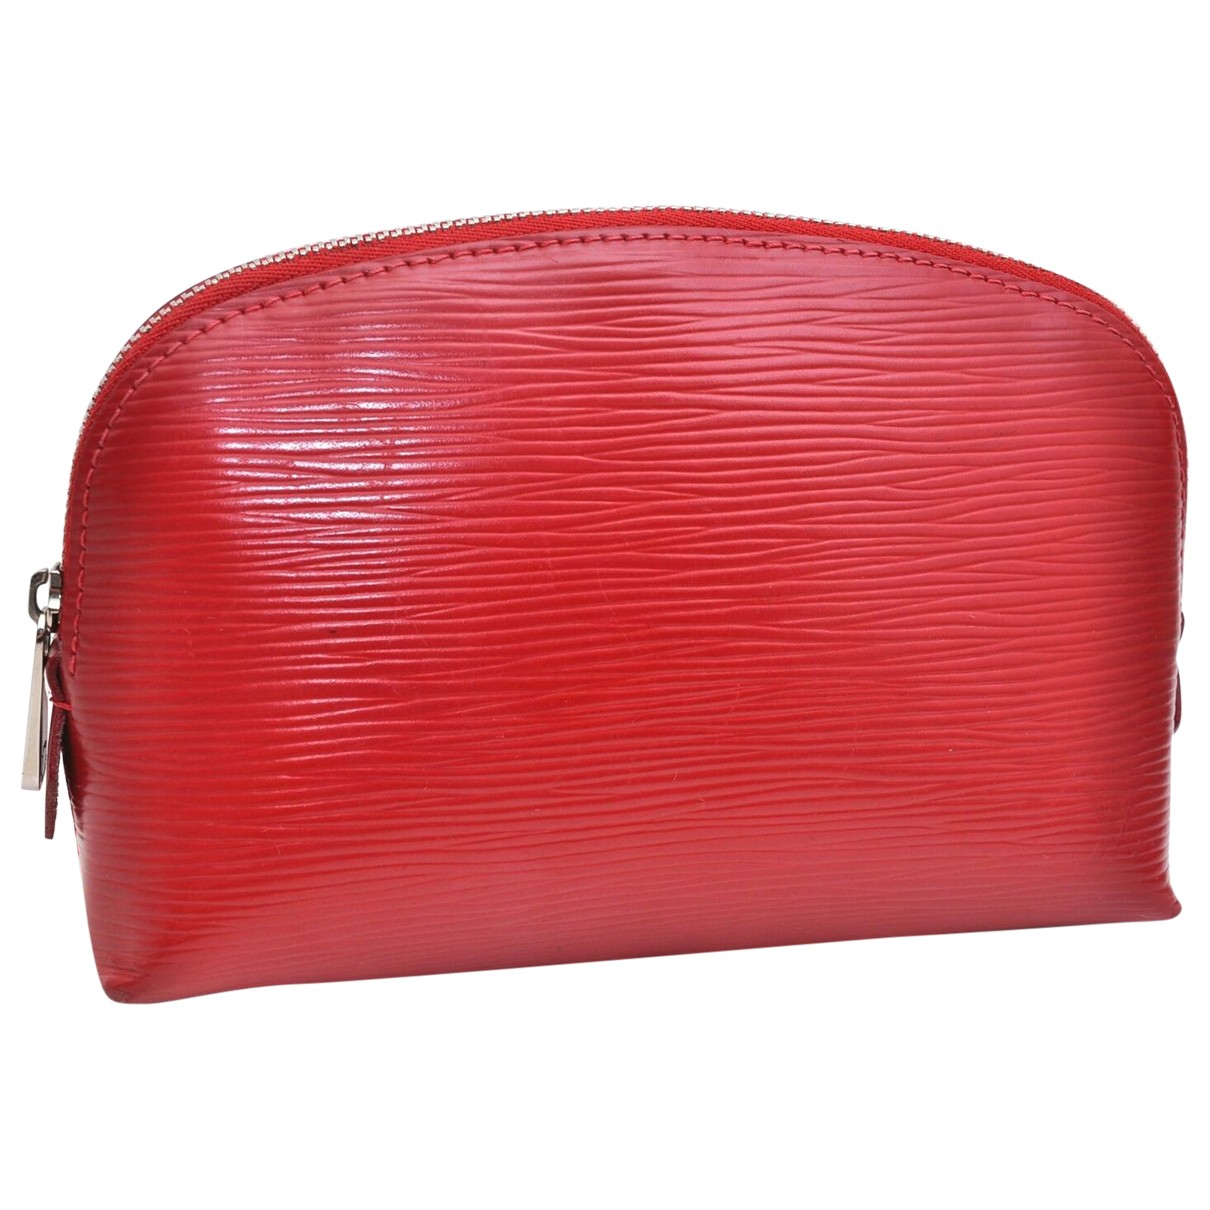 Louis Vuitton \N Red Leather Clutch bag for Women \N